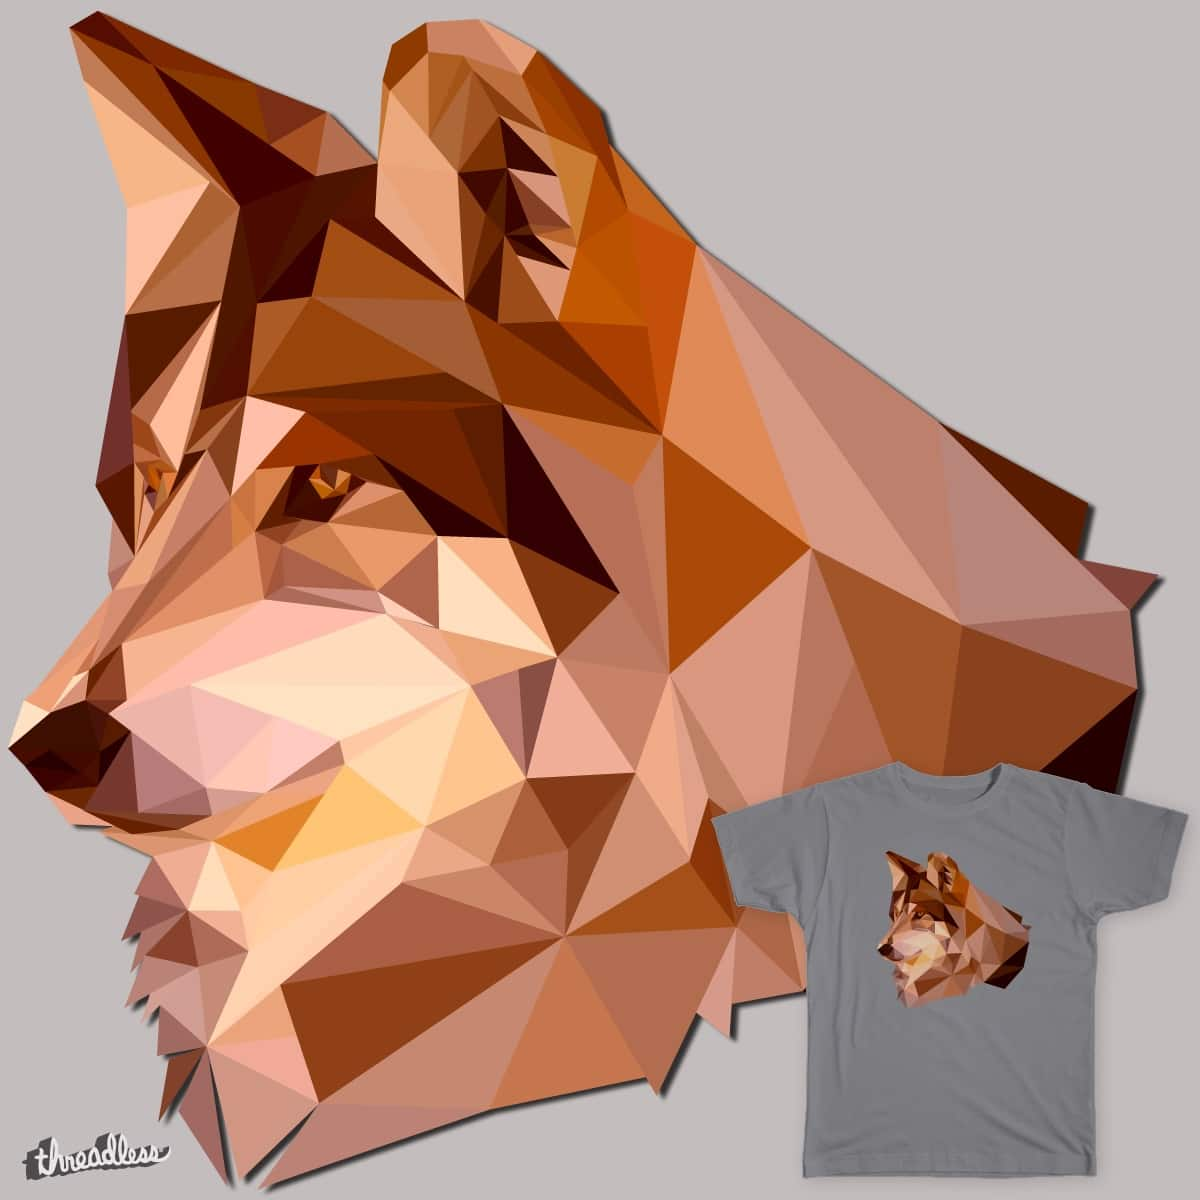 Calm Wolf by Skyjack23 on Threadless